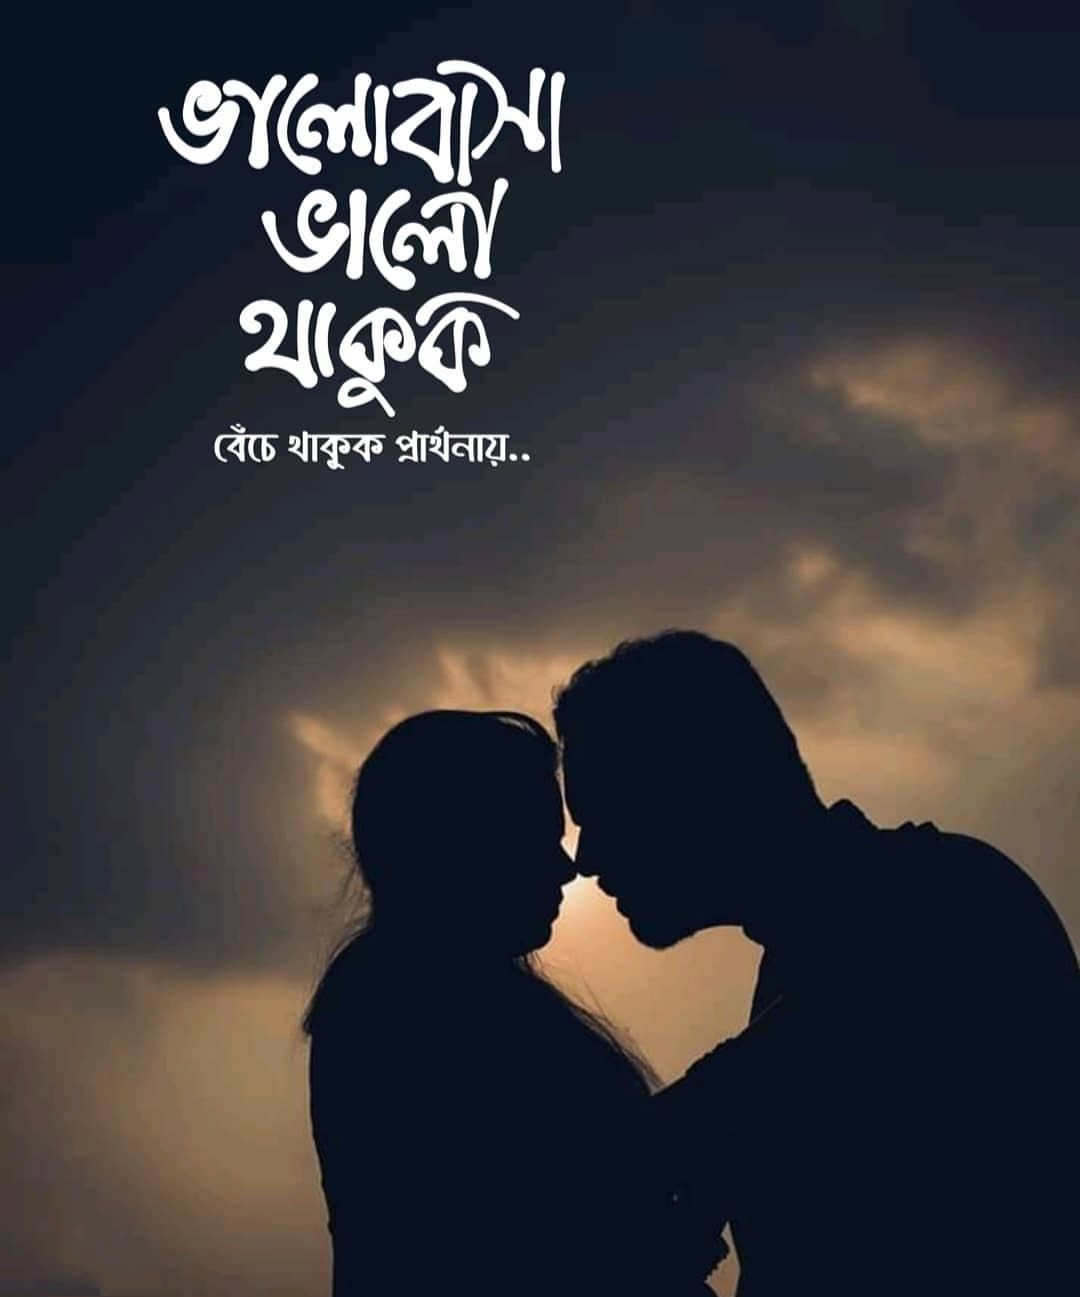 bengali sad whatsapp status image download